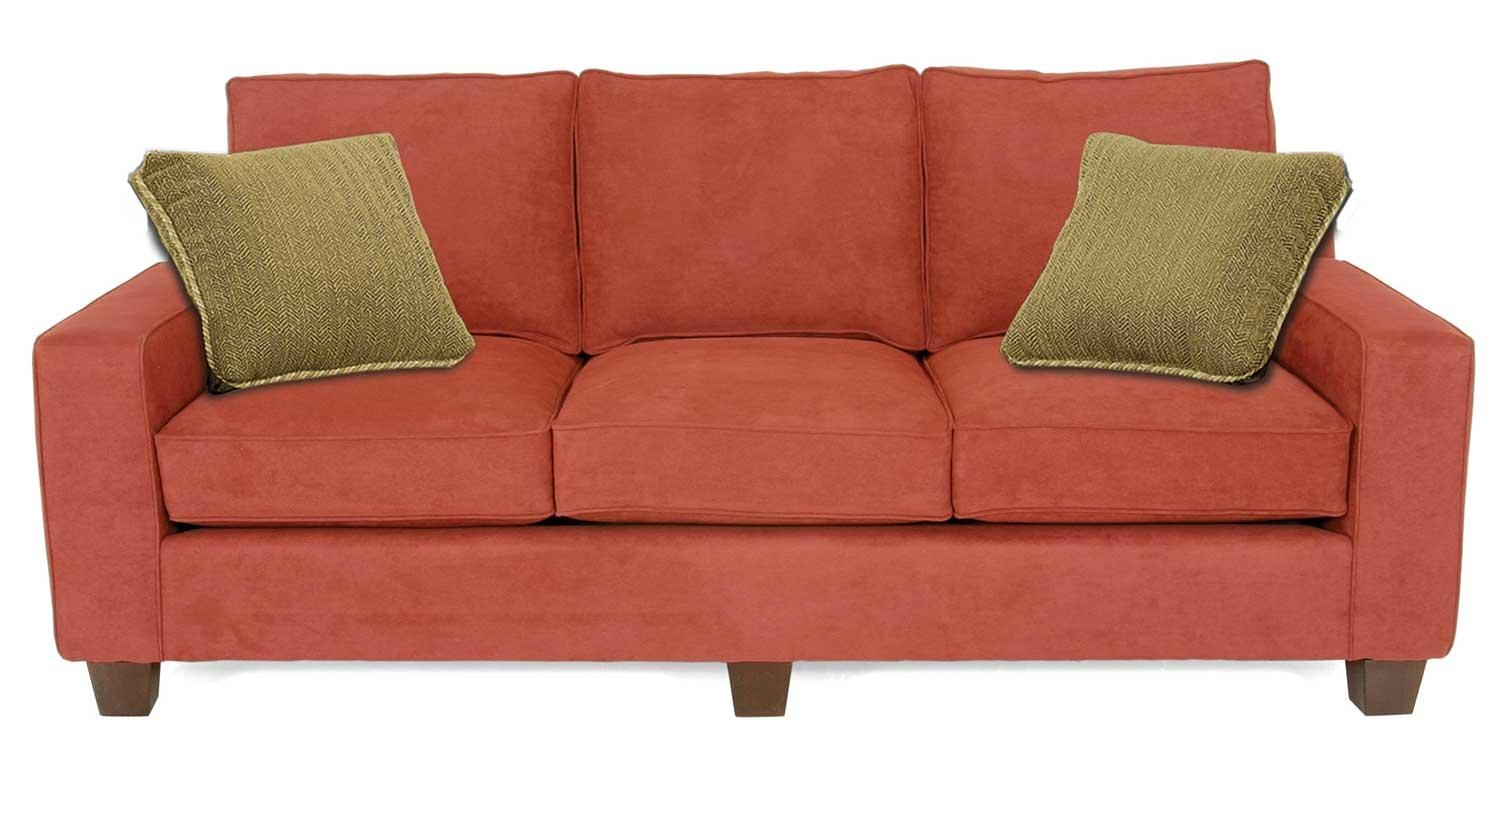 Circle Furniture – Metro Sofa | Modern Designer Sofa | Circle With Circle Sofas (Image 4 of 20)